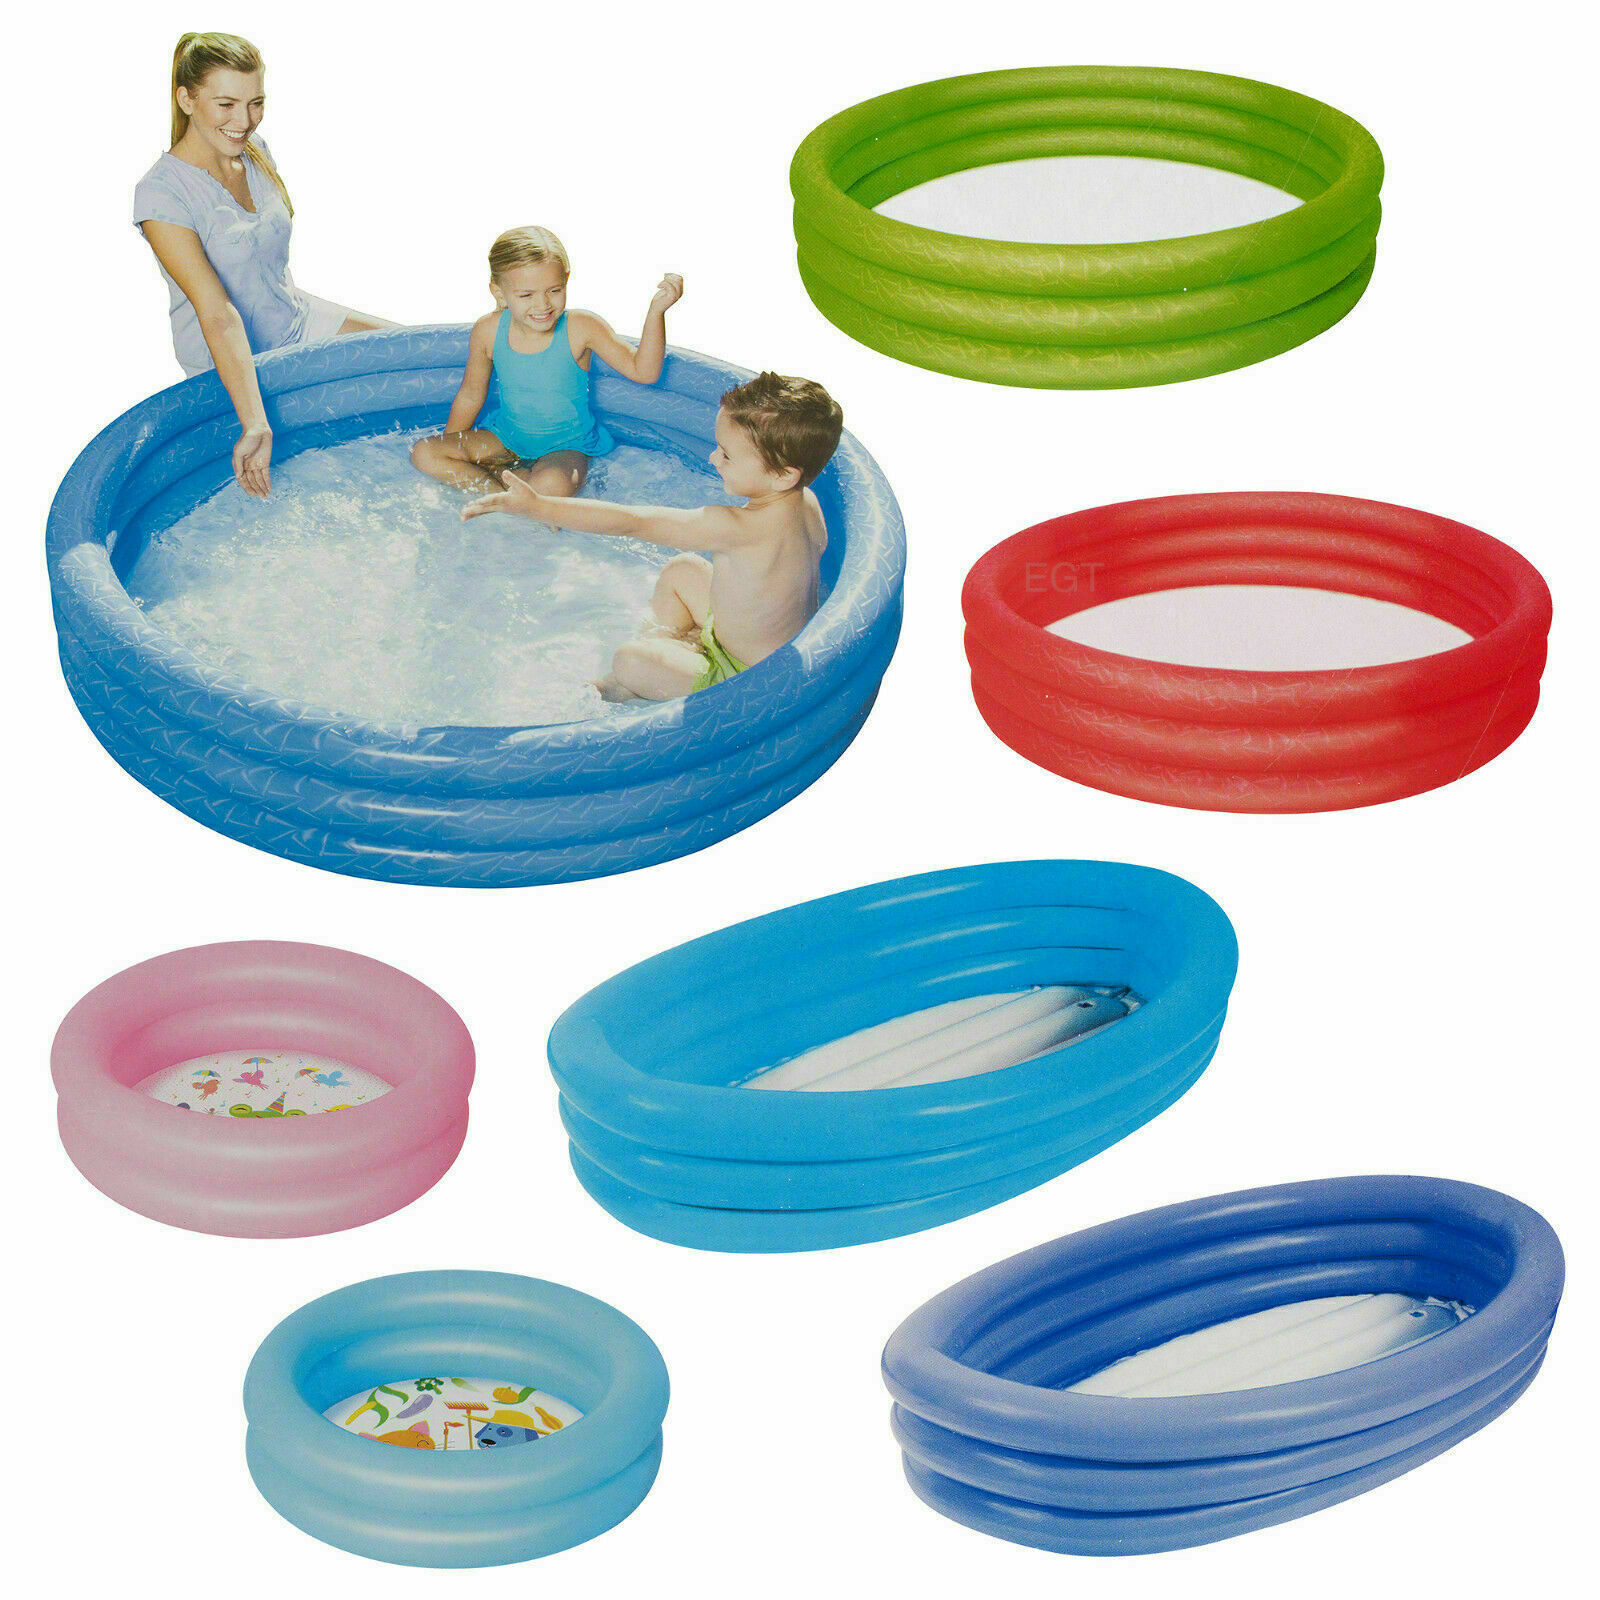 Kids Bestway Colorful Swimming Pool Water Paddling Activity Inflatable Fun Play